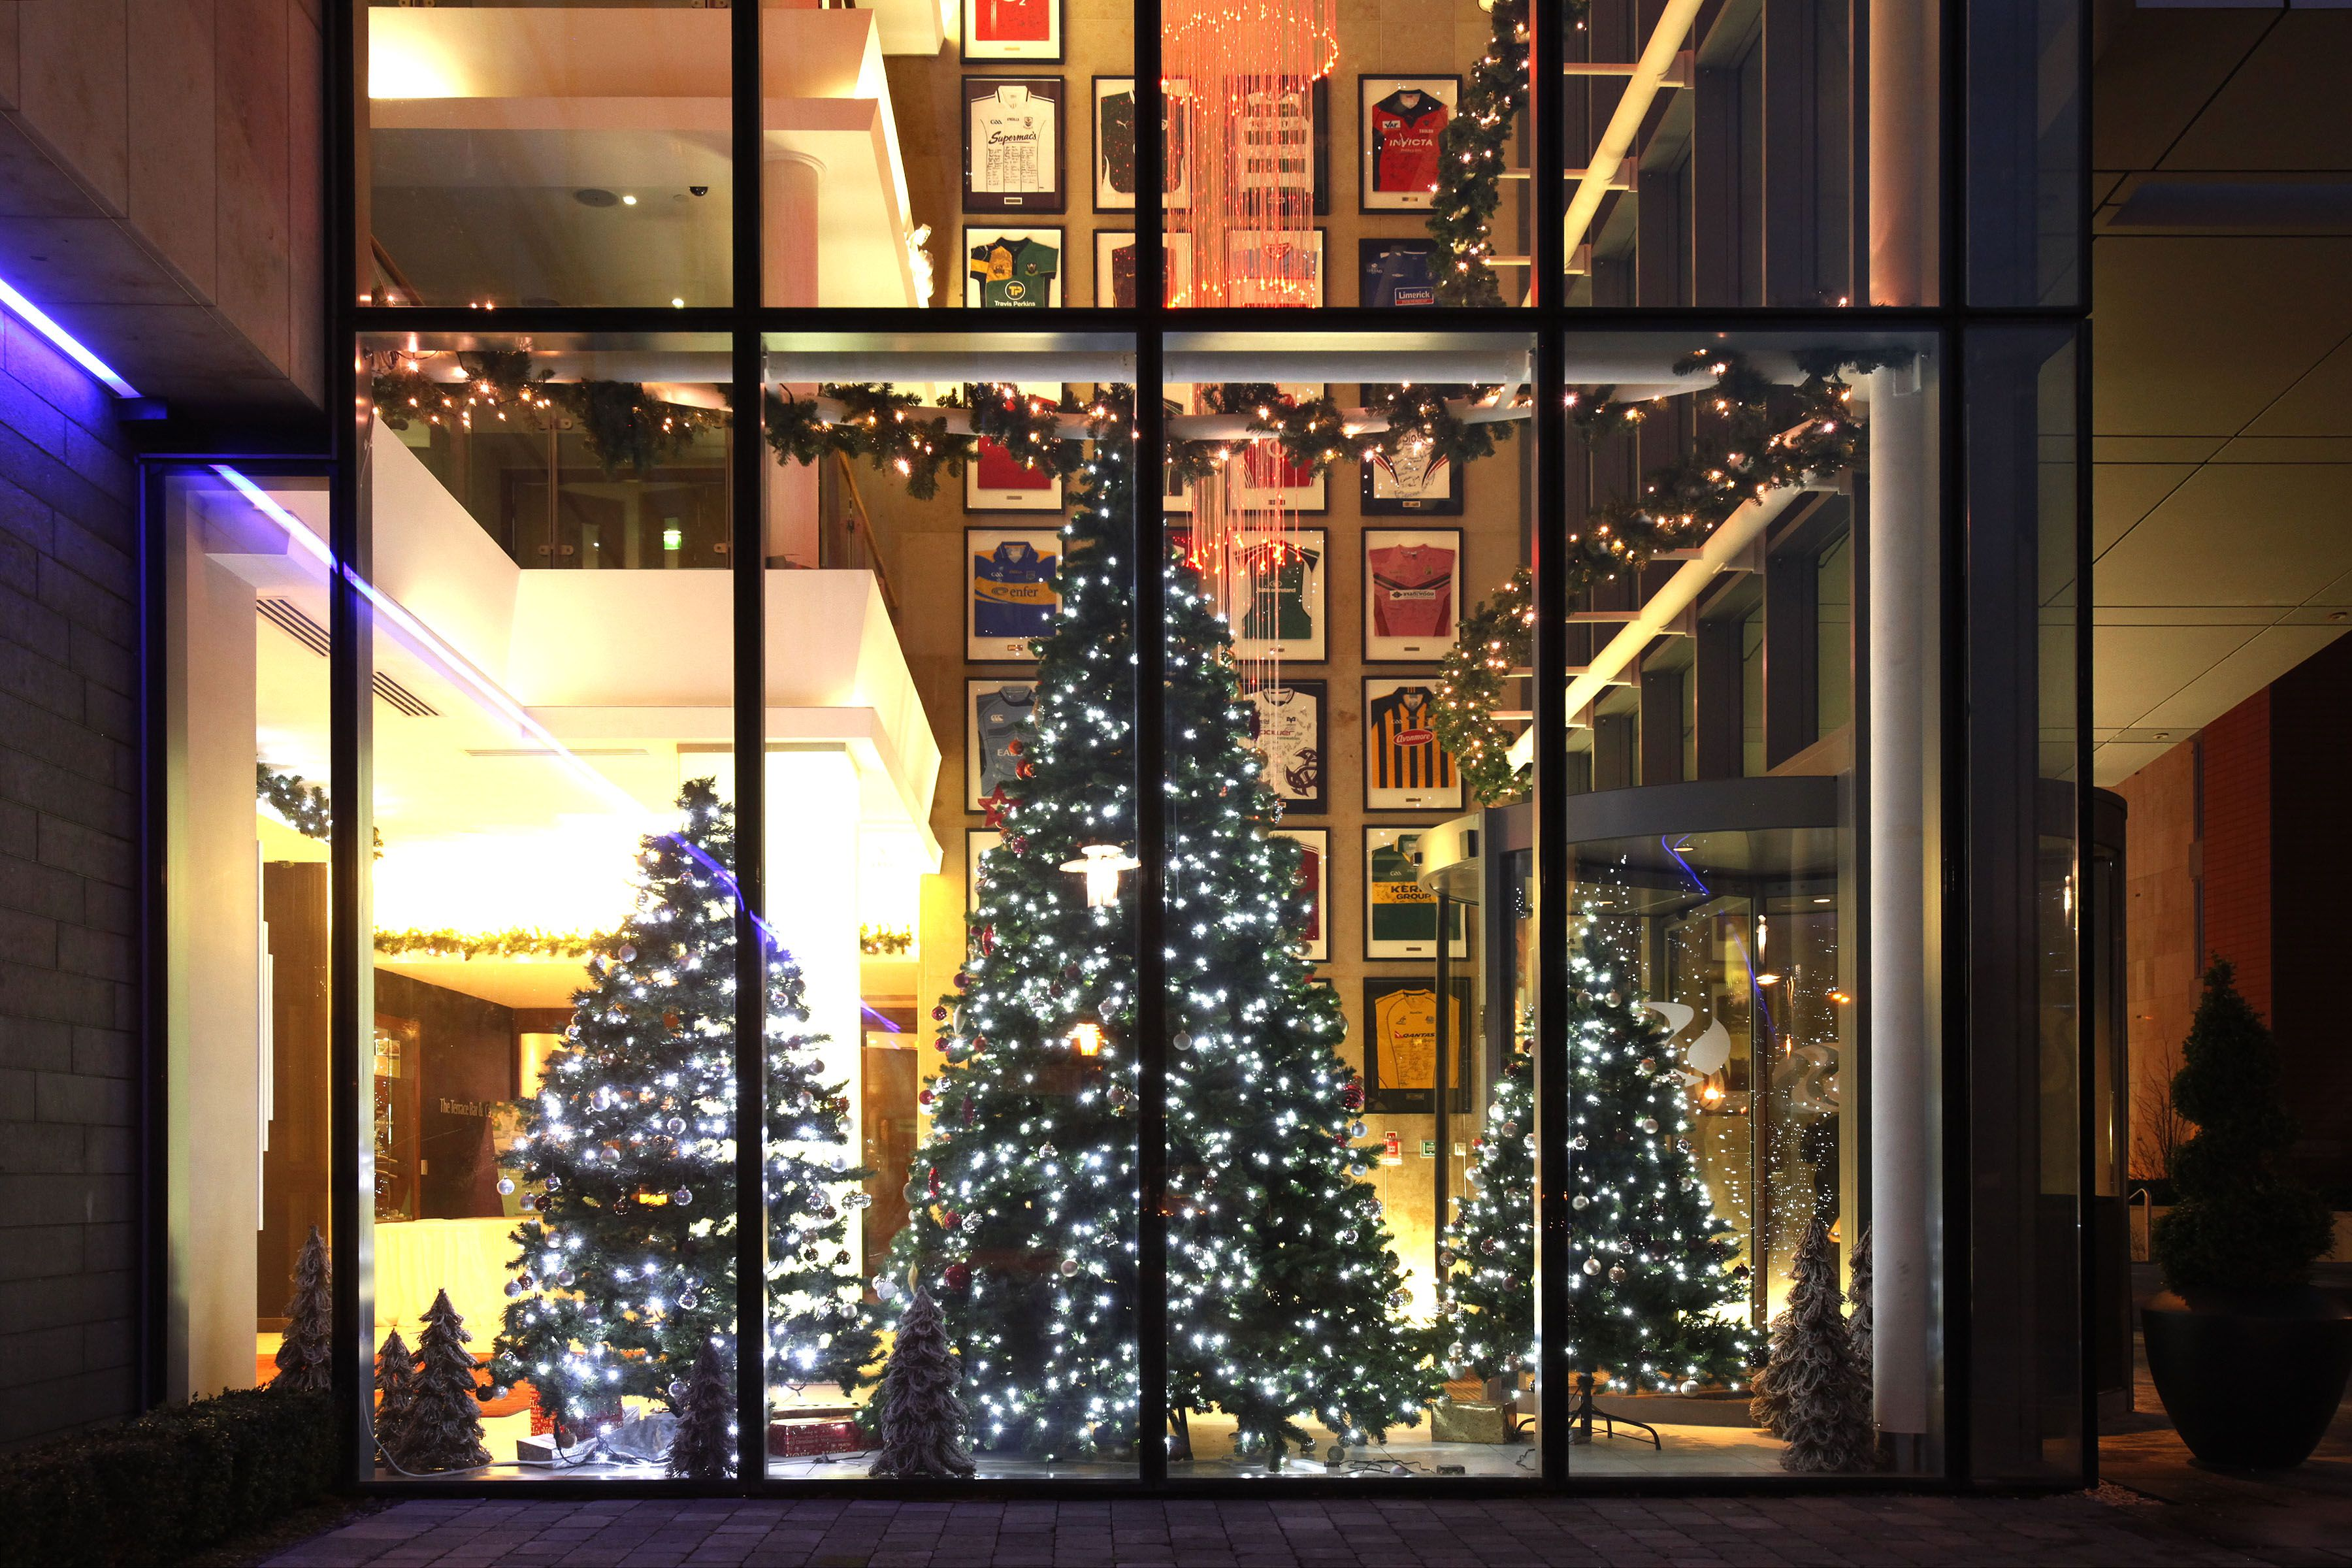 Twinkling Christmas Lights at hotel entrance